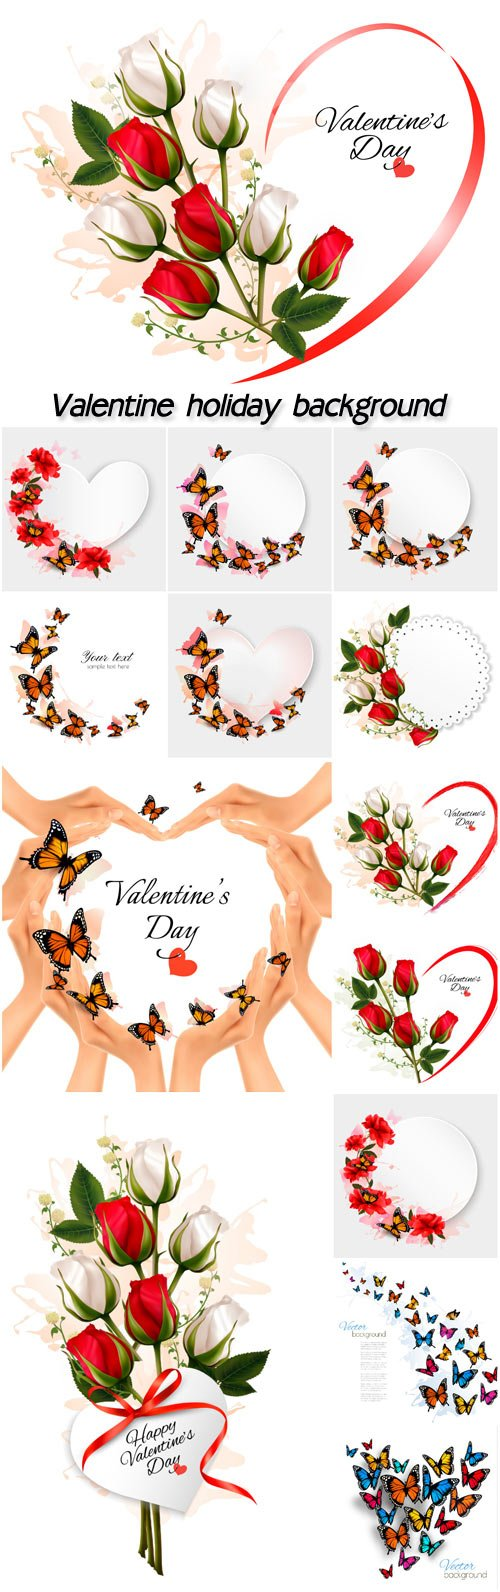 Valentine holiday background with red and white roses